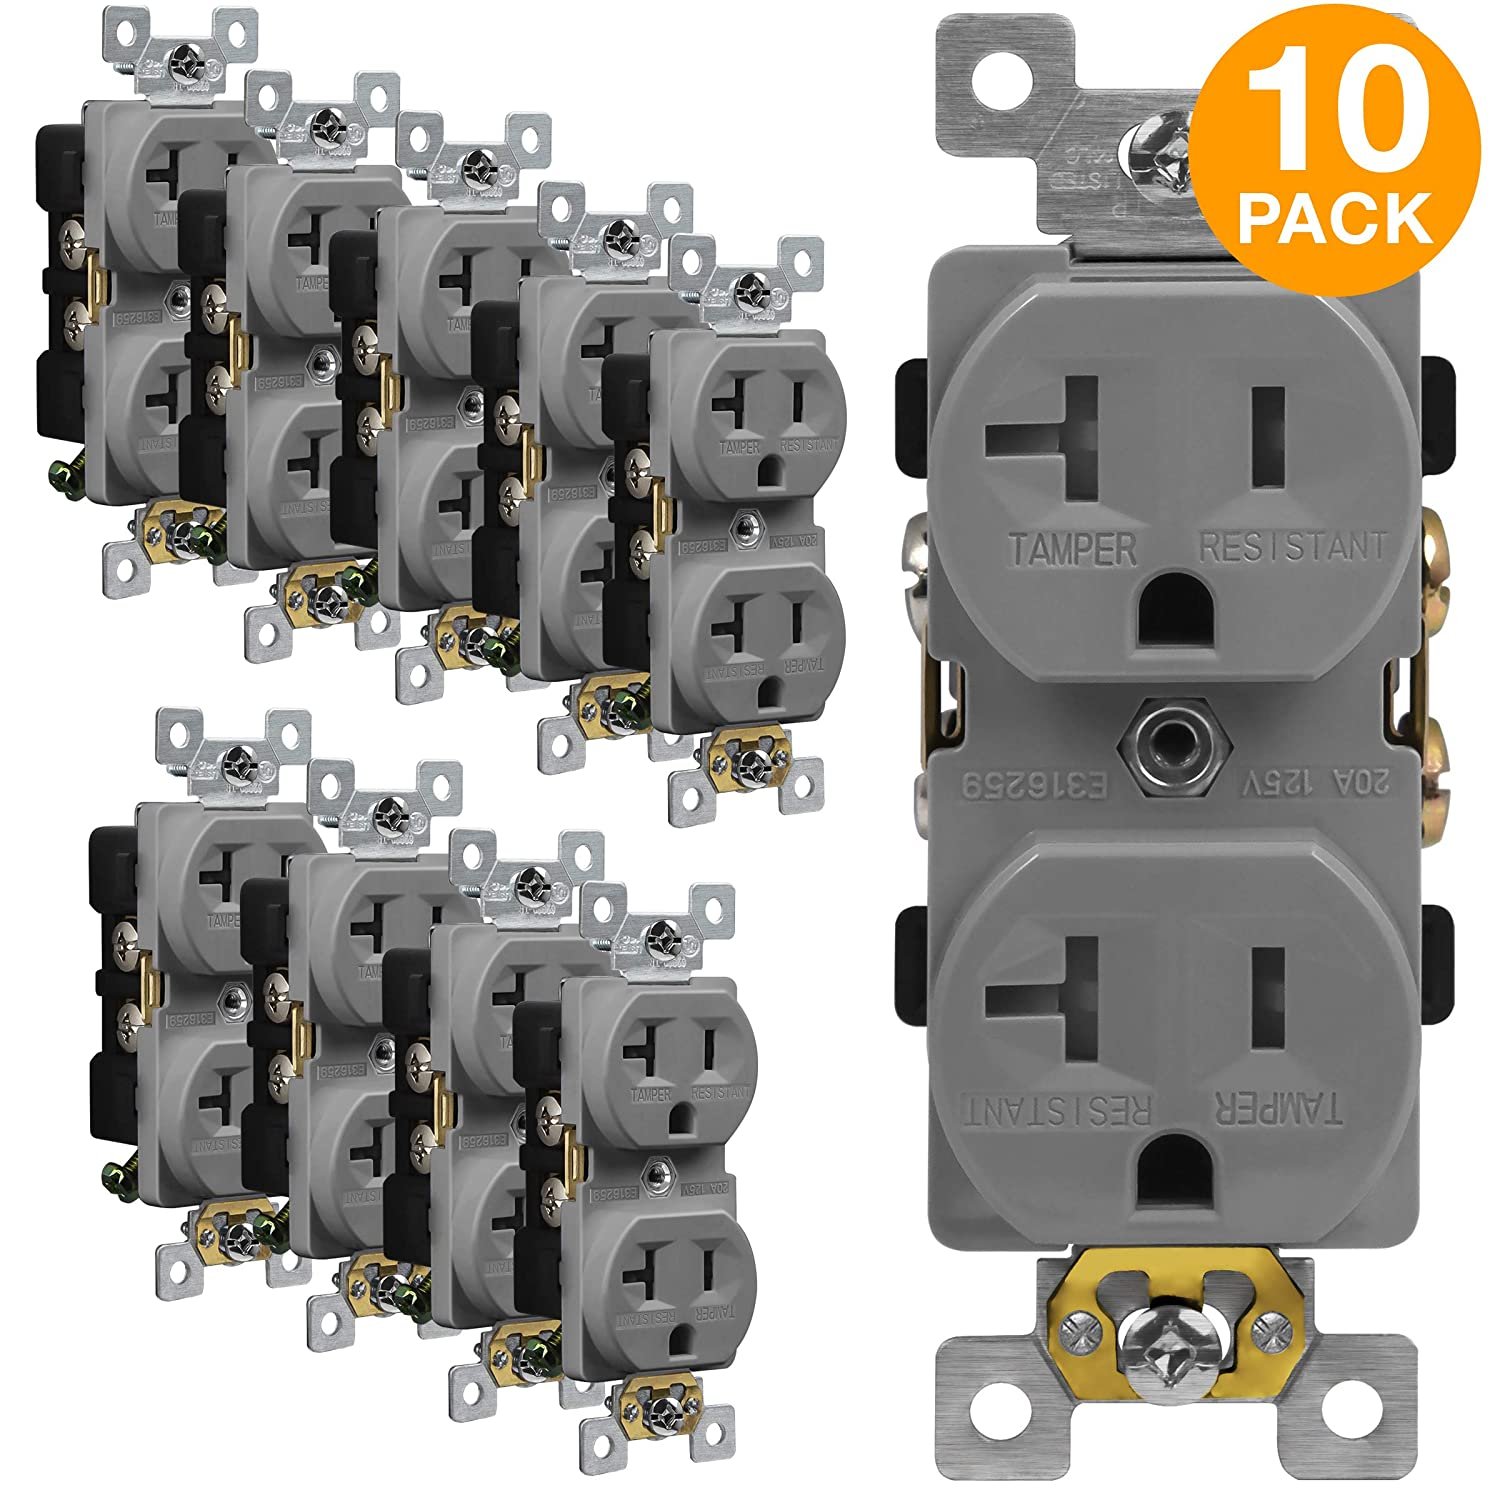 ENERLITES Duplex Outlet, Tamper-Resistant Receptacles, Industrial Grade,  3-Wire Grounding, 2-Pole, 5-20R, 20A 125V, UL Listed, 62080-TR-GY-10PCS,  Gray